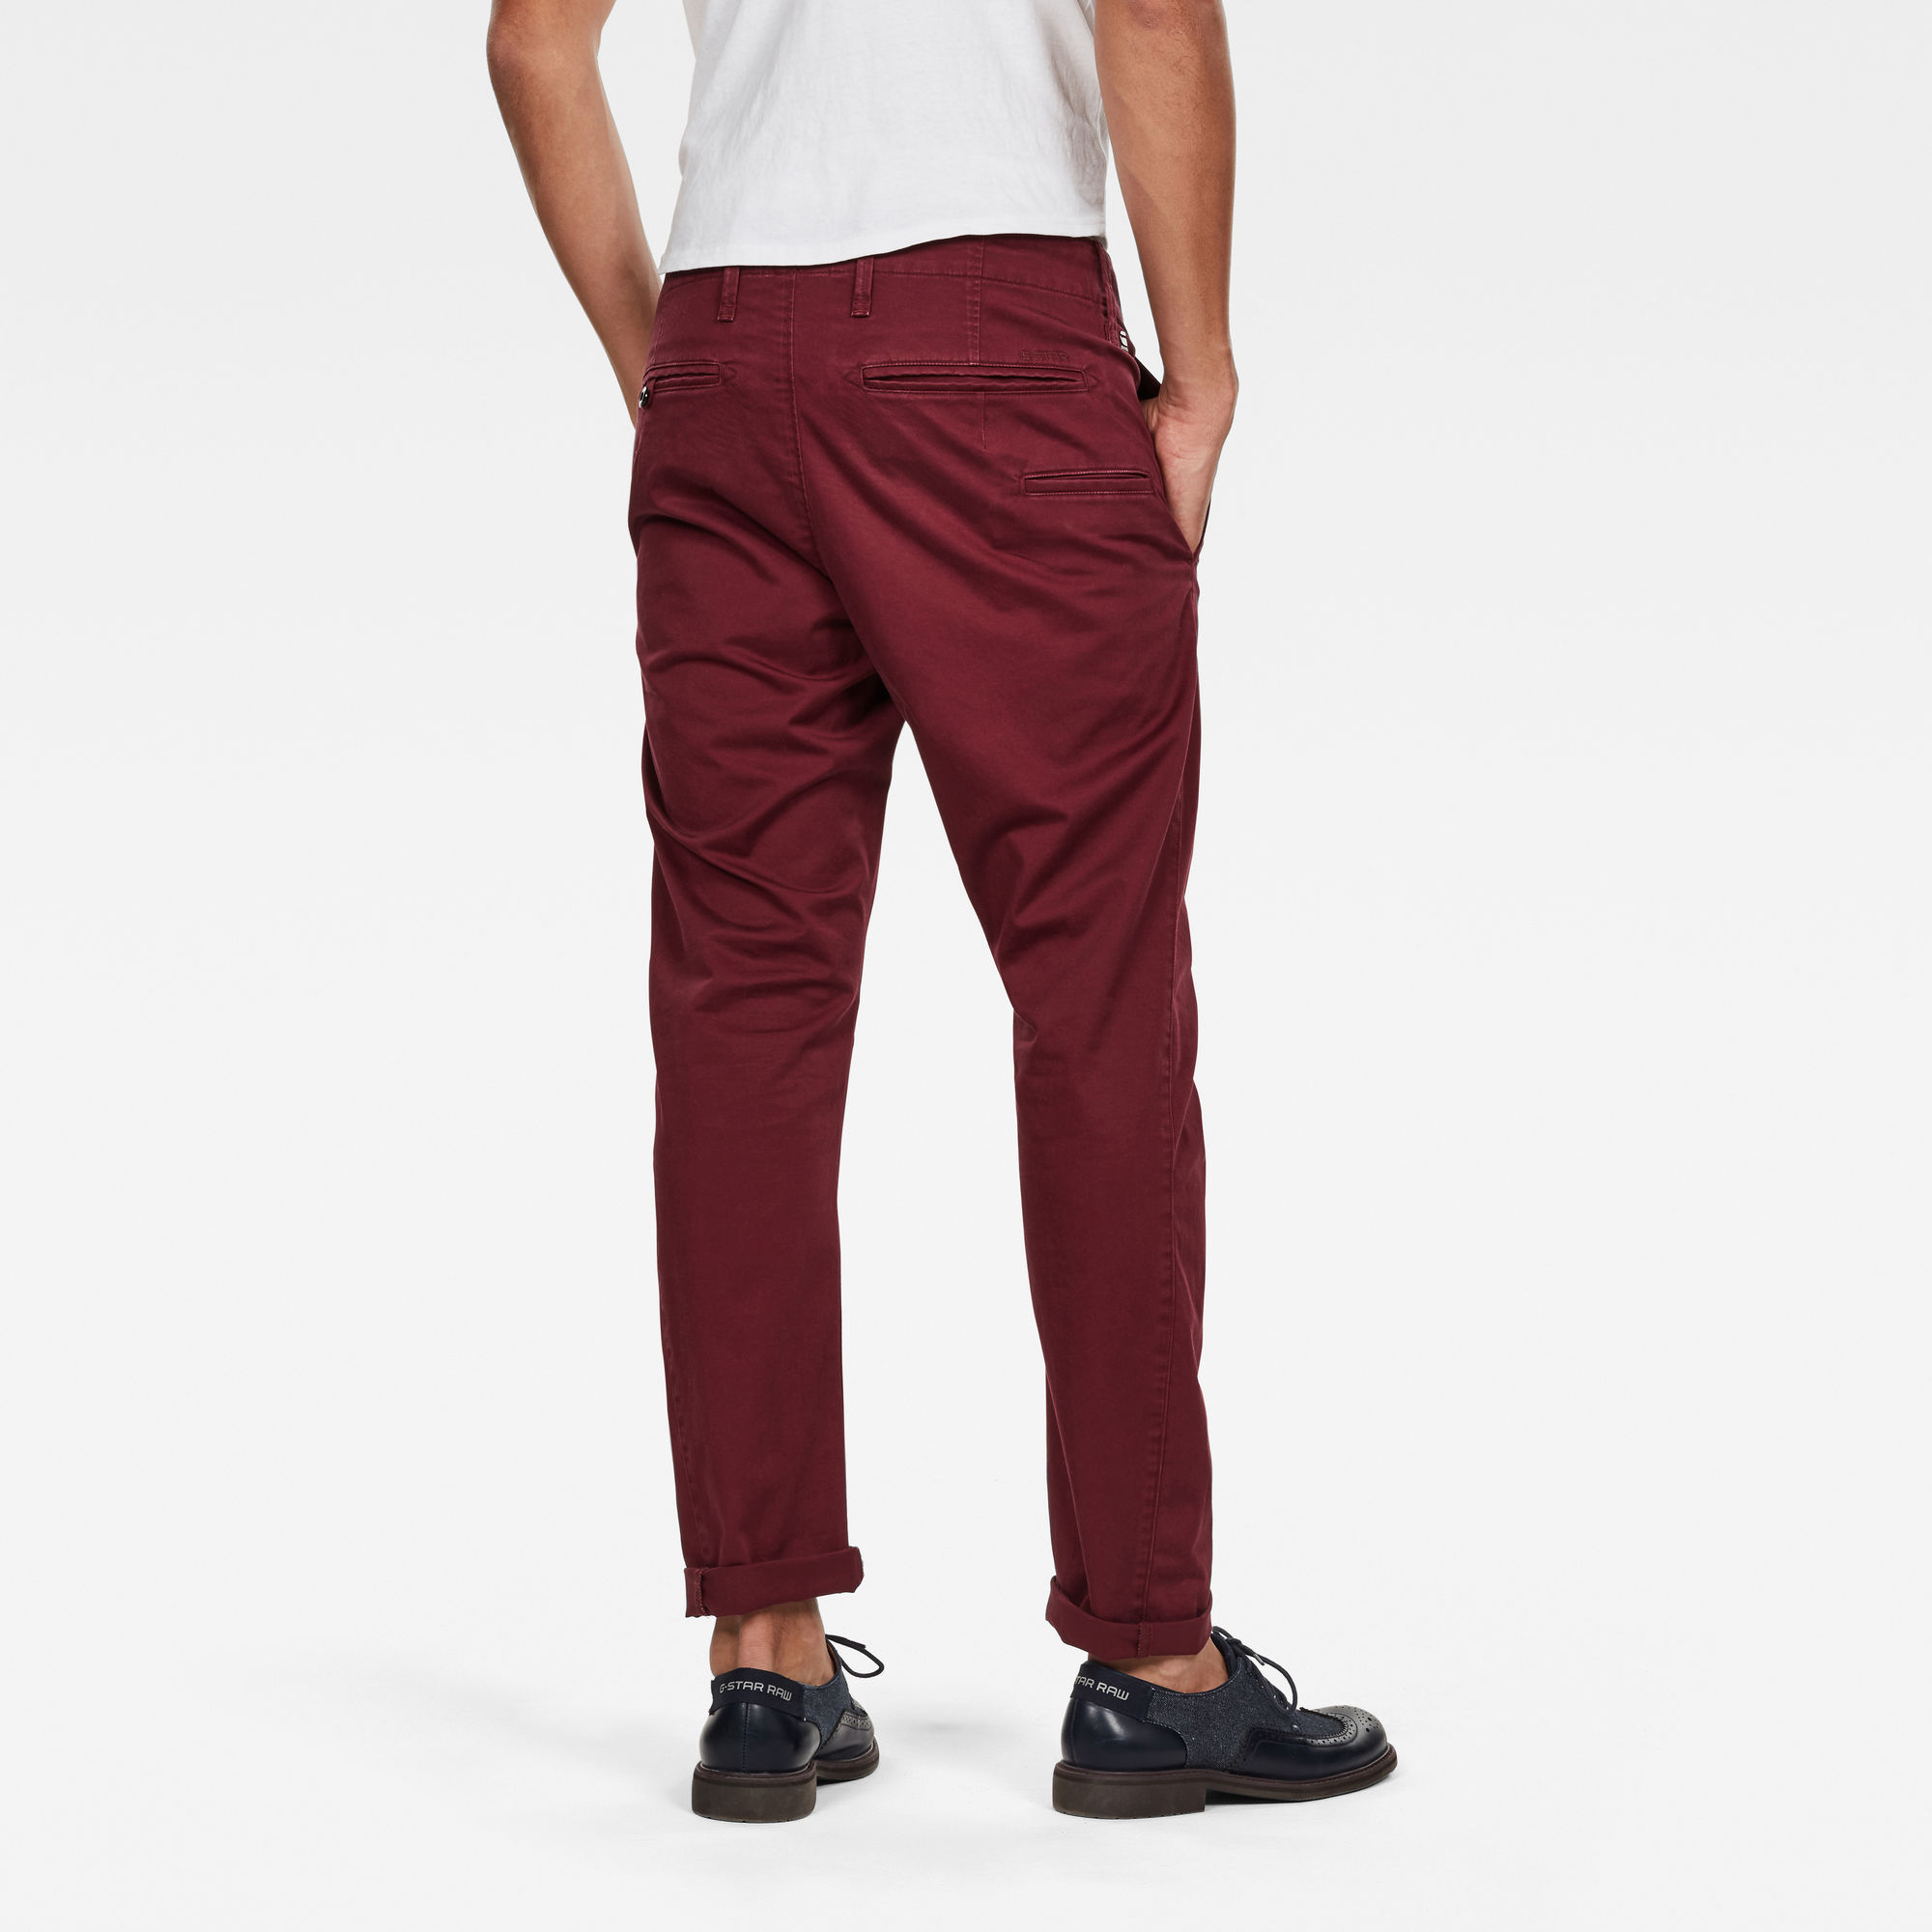 G-Star RAW Vetar Slim Chino Broek